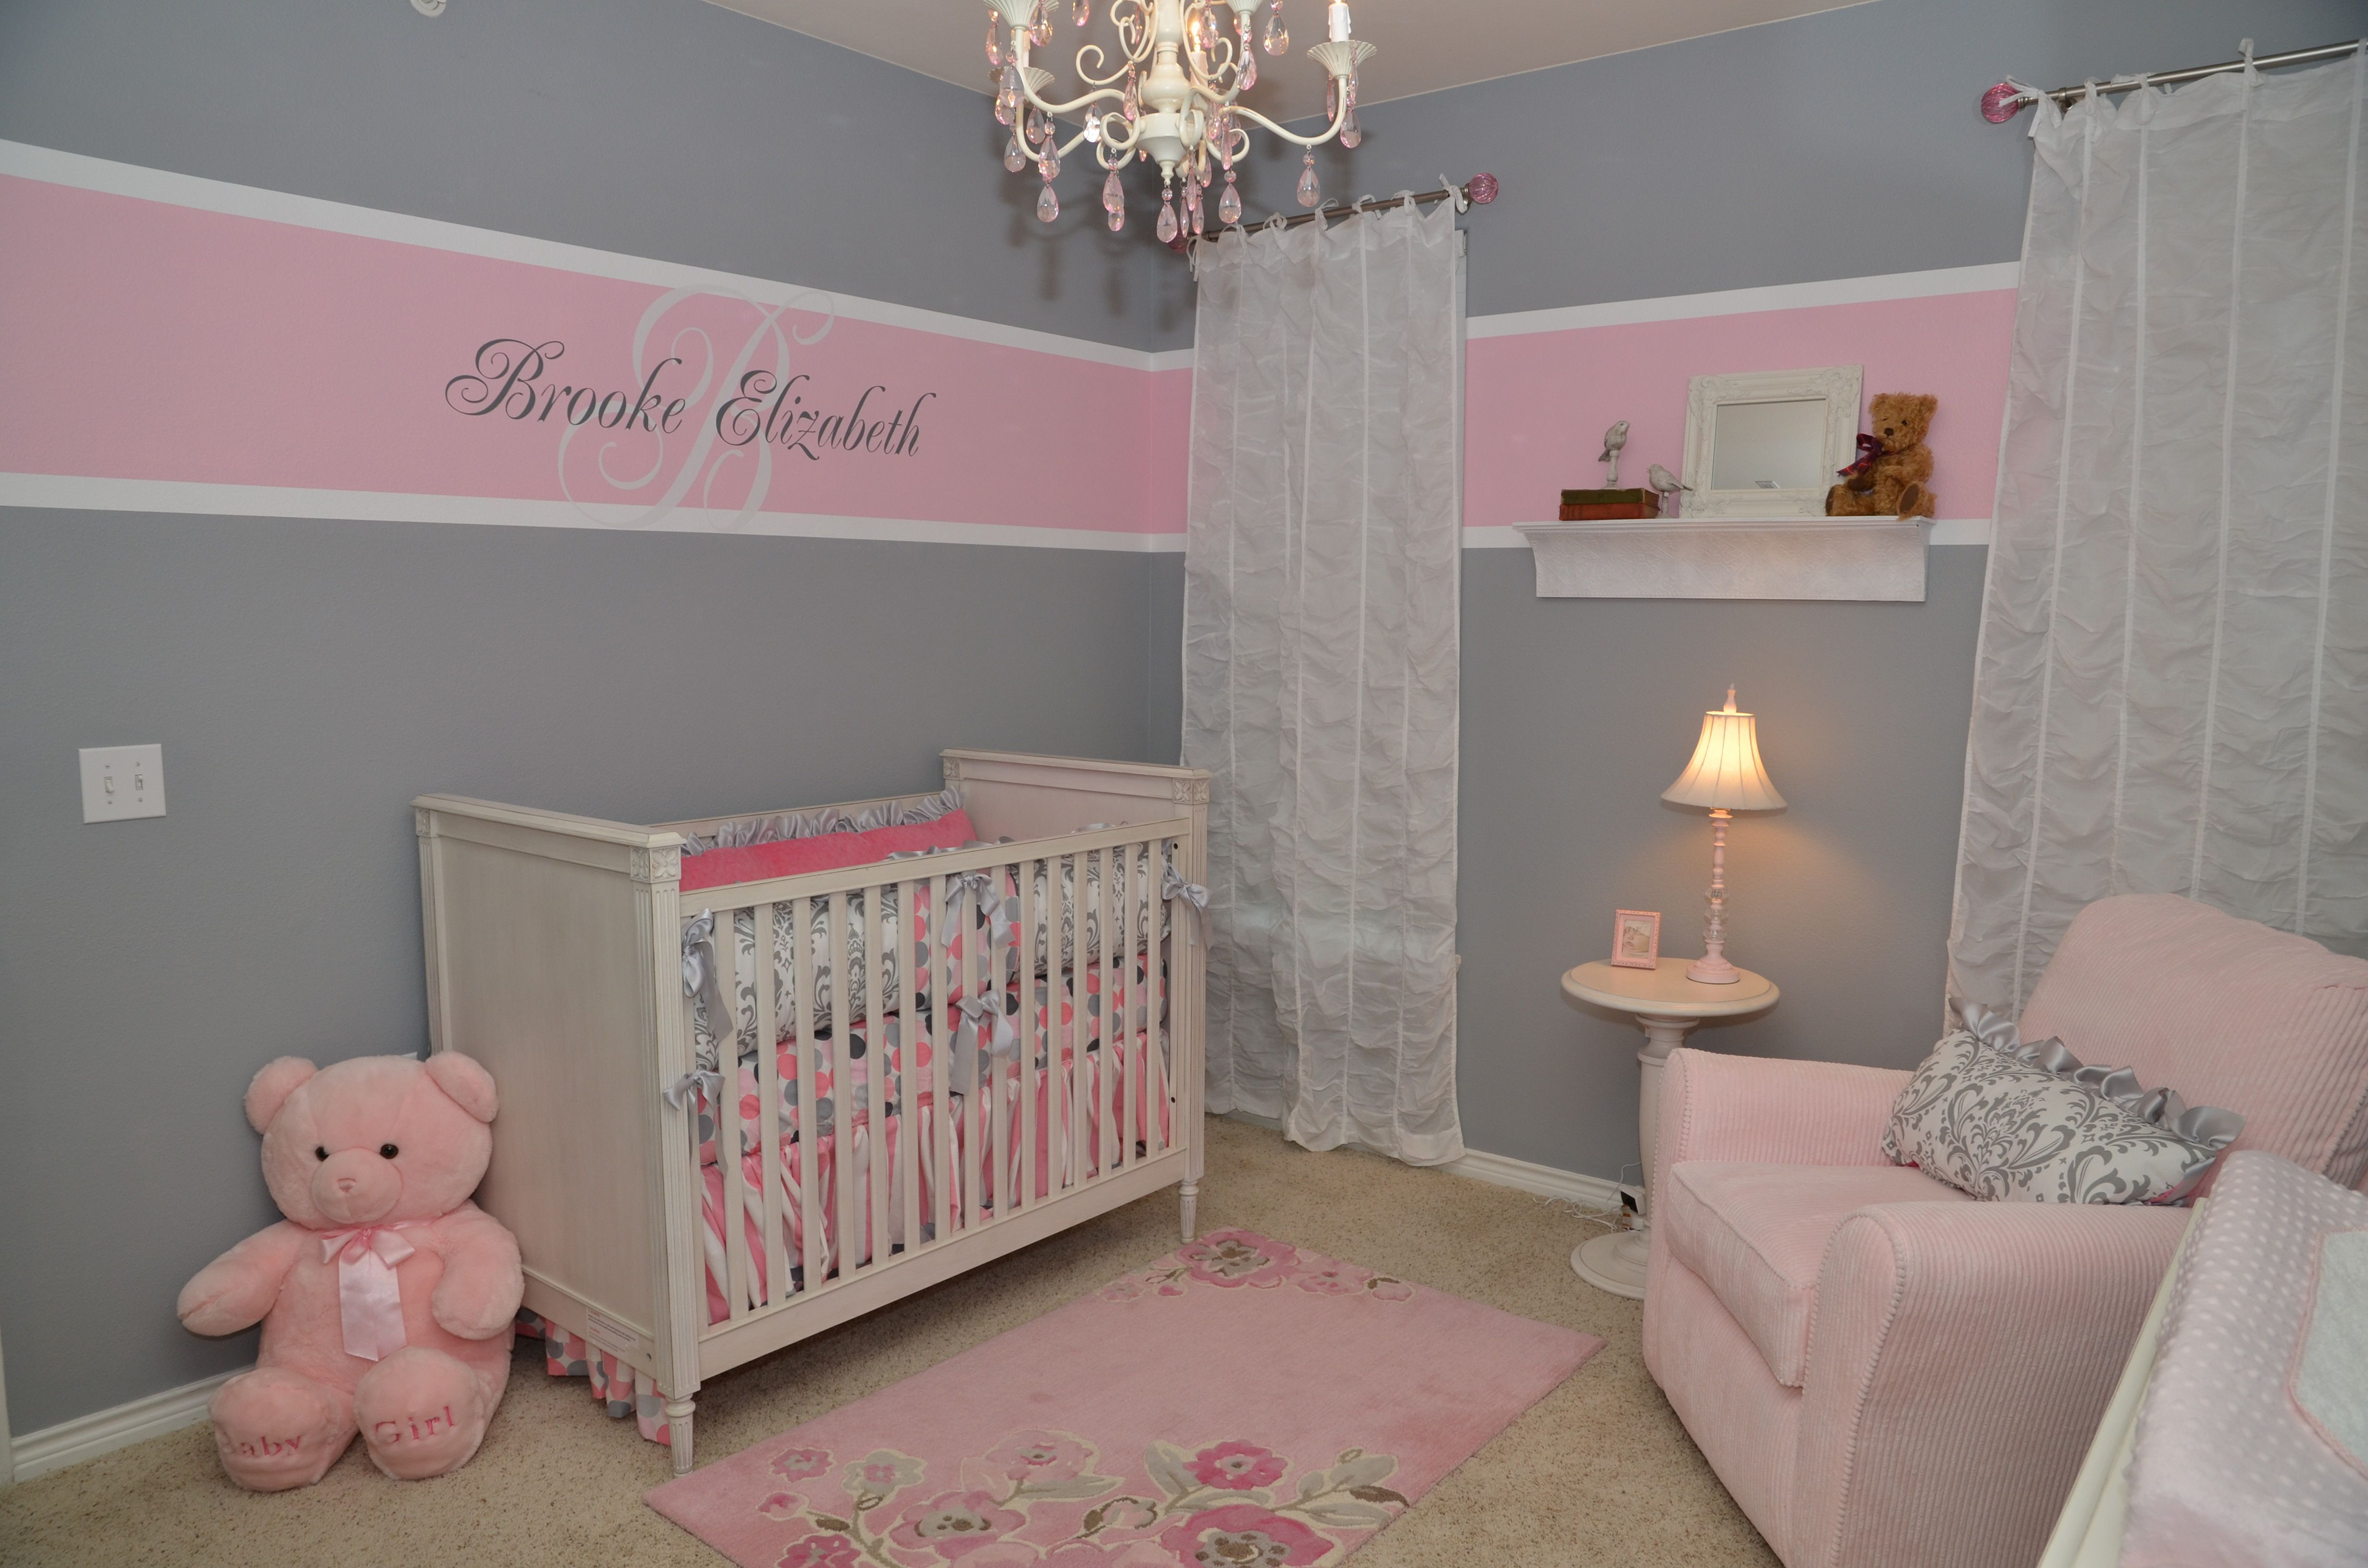 30 Most Popular And Cute Baby Nursery Room Ideas for Girls images